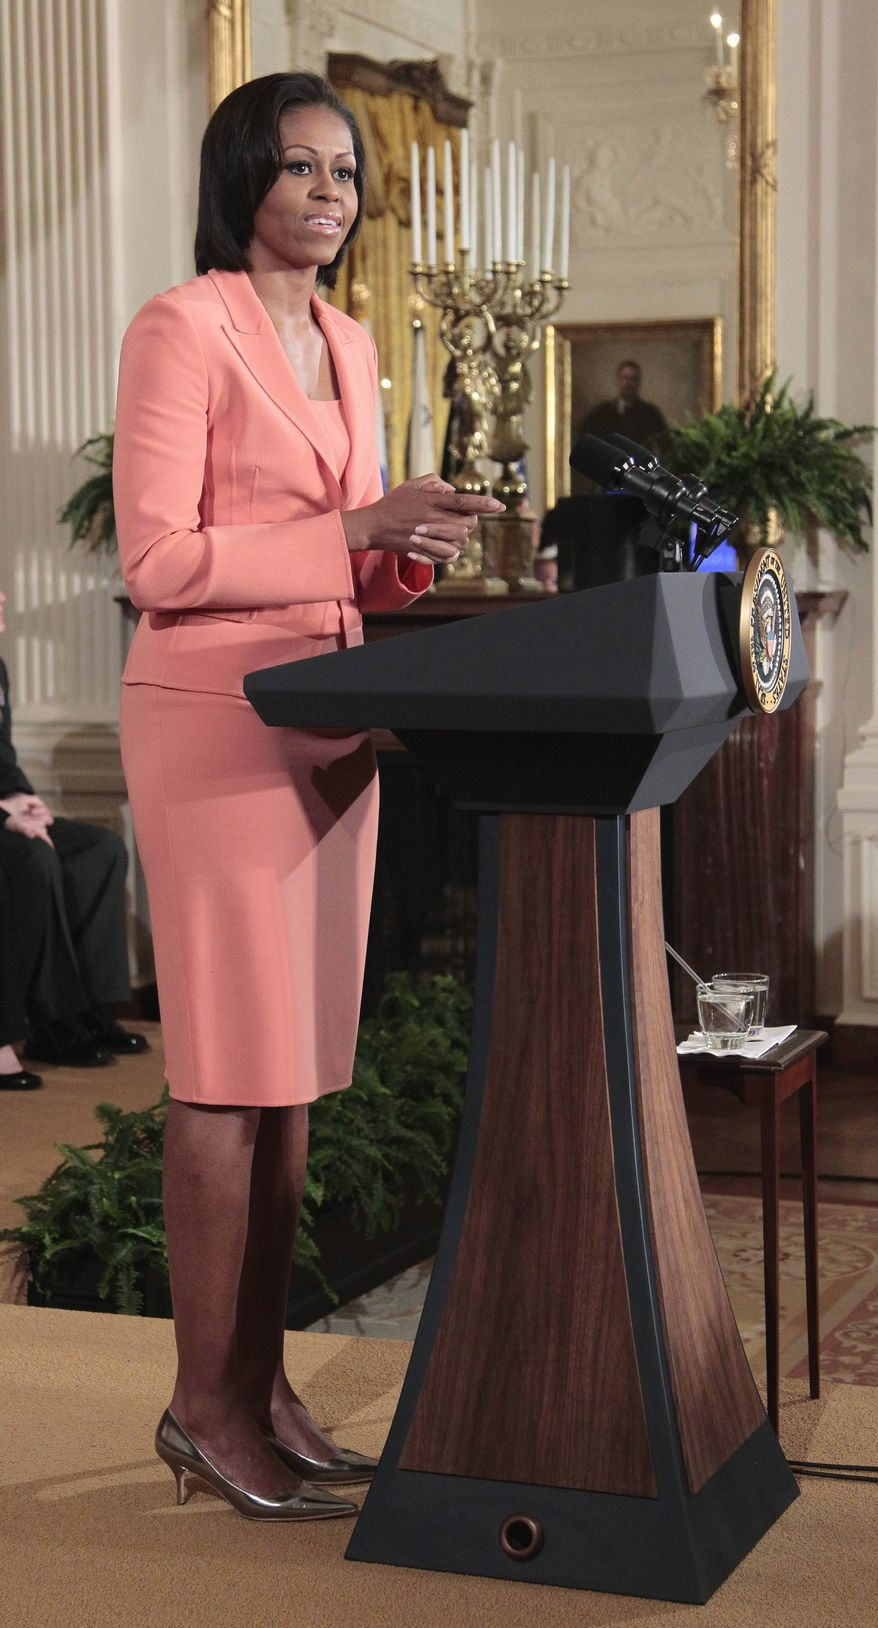 ** FILE ** First lady Michelle Obama delivers remarks in the East Room of the White House in this April 12, 2011, file photo, to launch Joining Forces, the national initiative to support and honor America's service members and their families. Mrs. Obama is expected to announce the commitment from more than 100 medical schools during an appearance Wednesday, Jan. 11, 2012, at Virginia Commonwealth University in Richmond. (AP Photo/Pablo Martinez Monsivais, File)